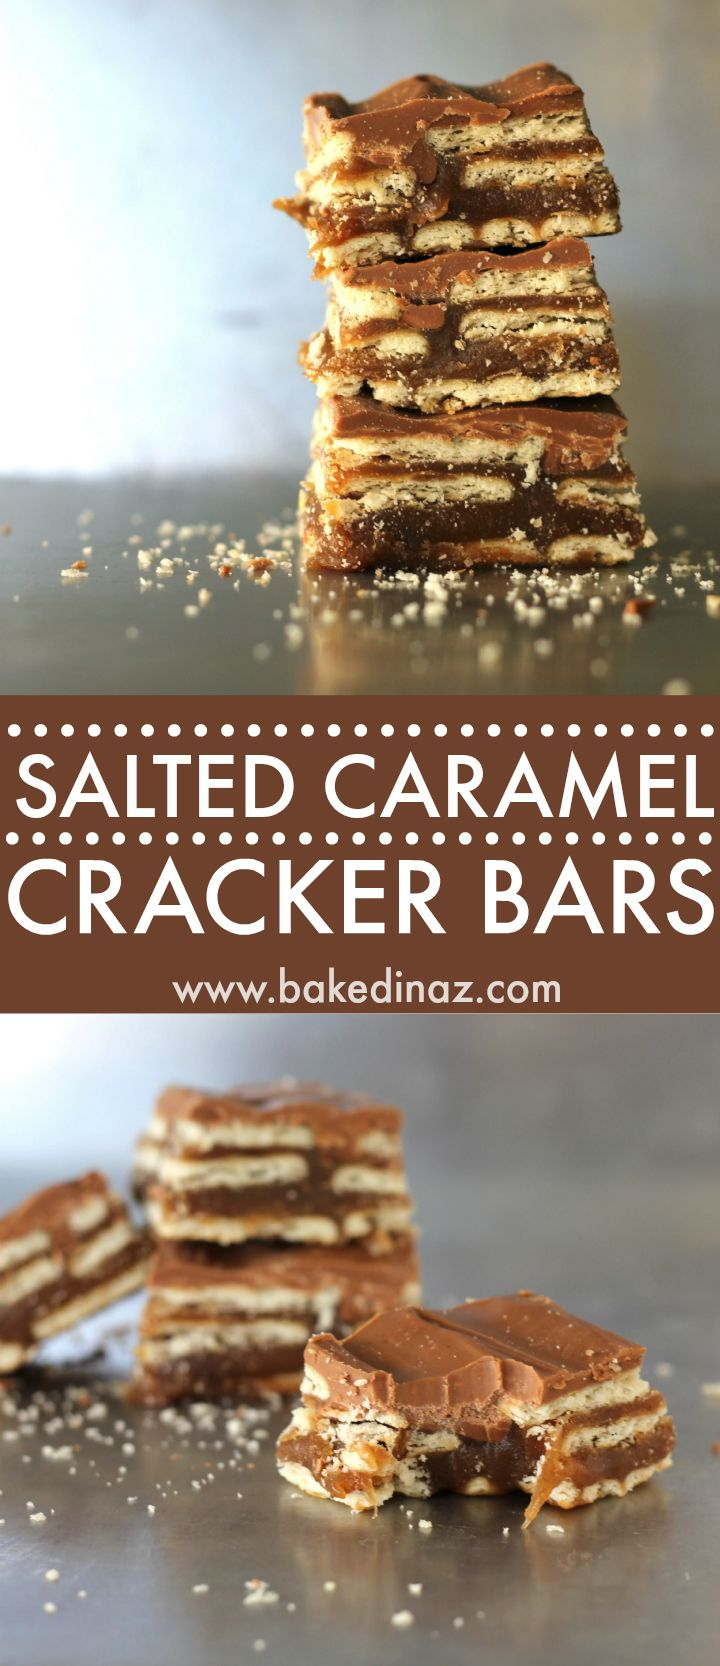 Salted Caramel Cracker Bar - made with club crackers, these taste just like the Salt River Bars at Liberty Market in Gilbert, AZ!